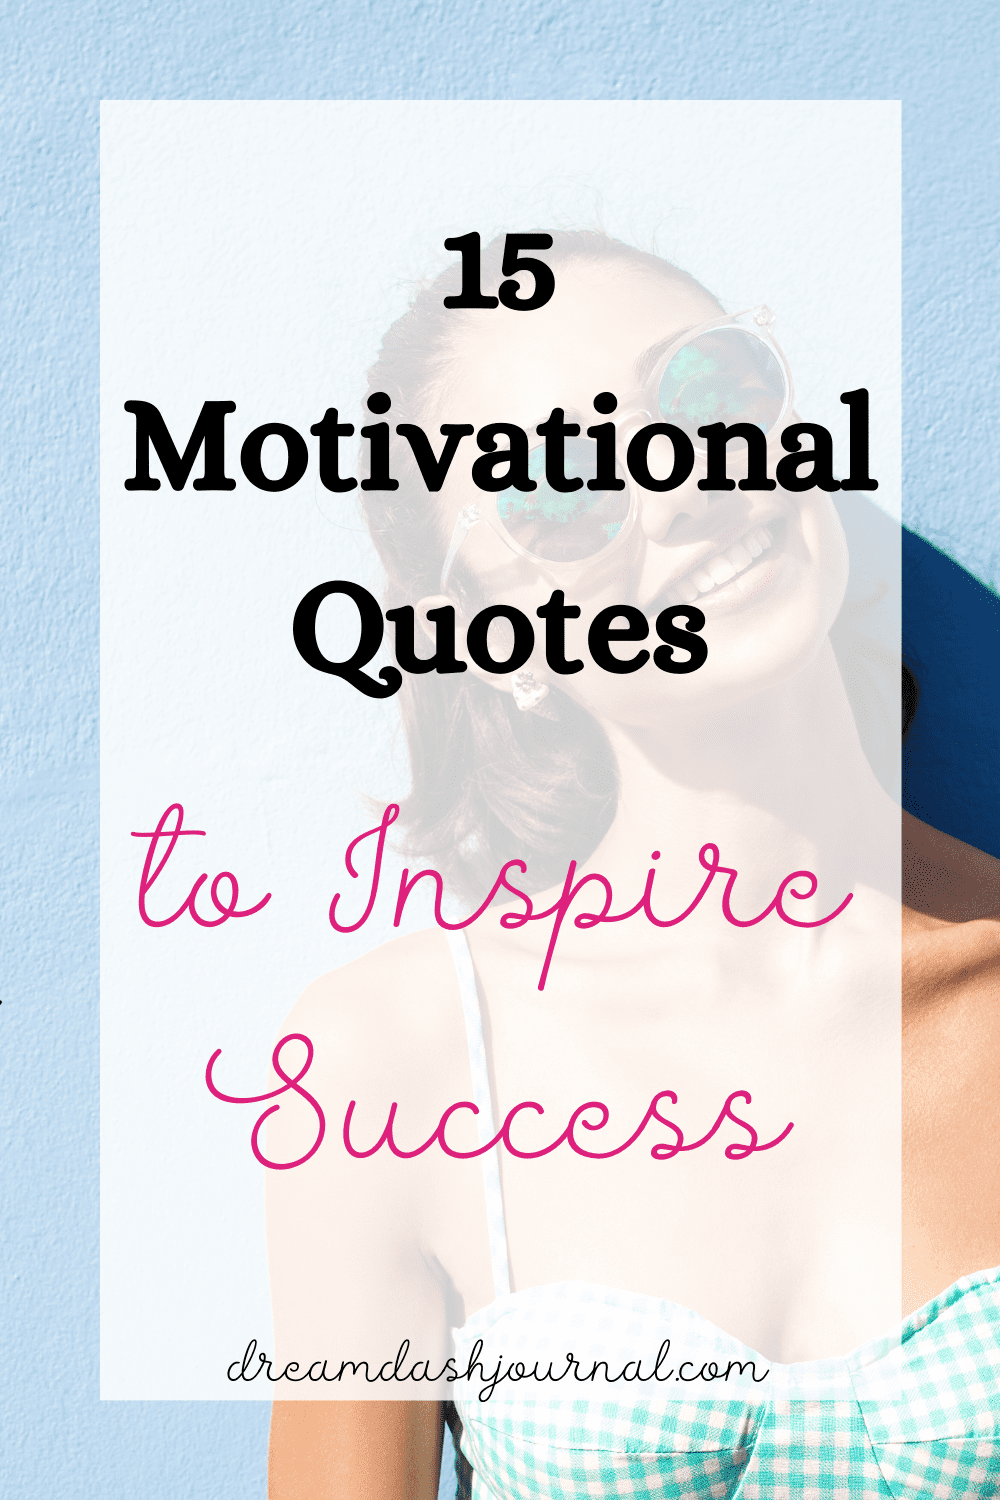 15 Motivational Quotes for Success and Happiness {Get Inspired!}